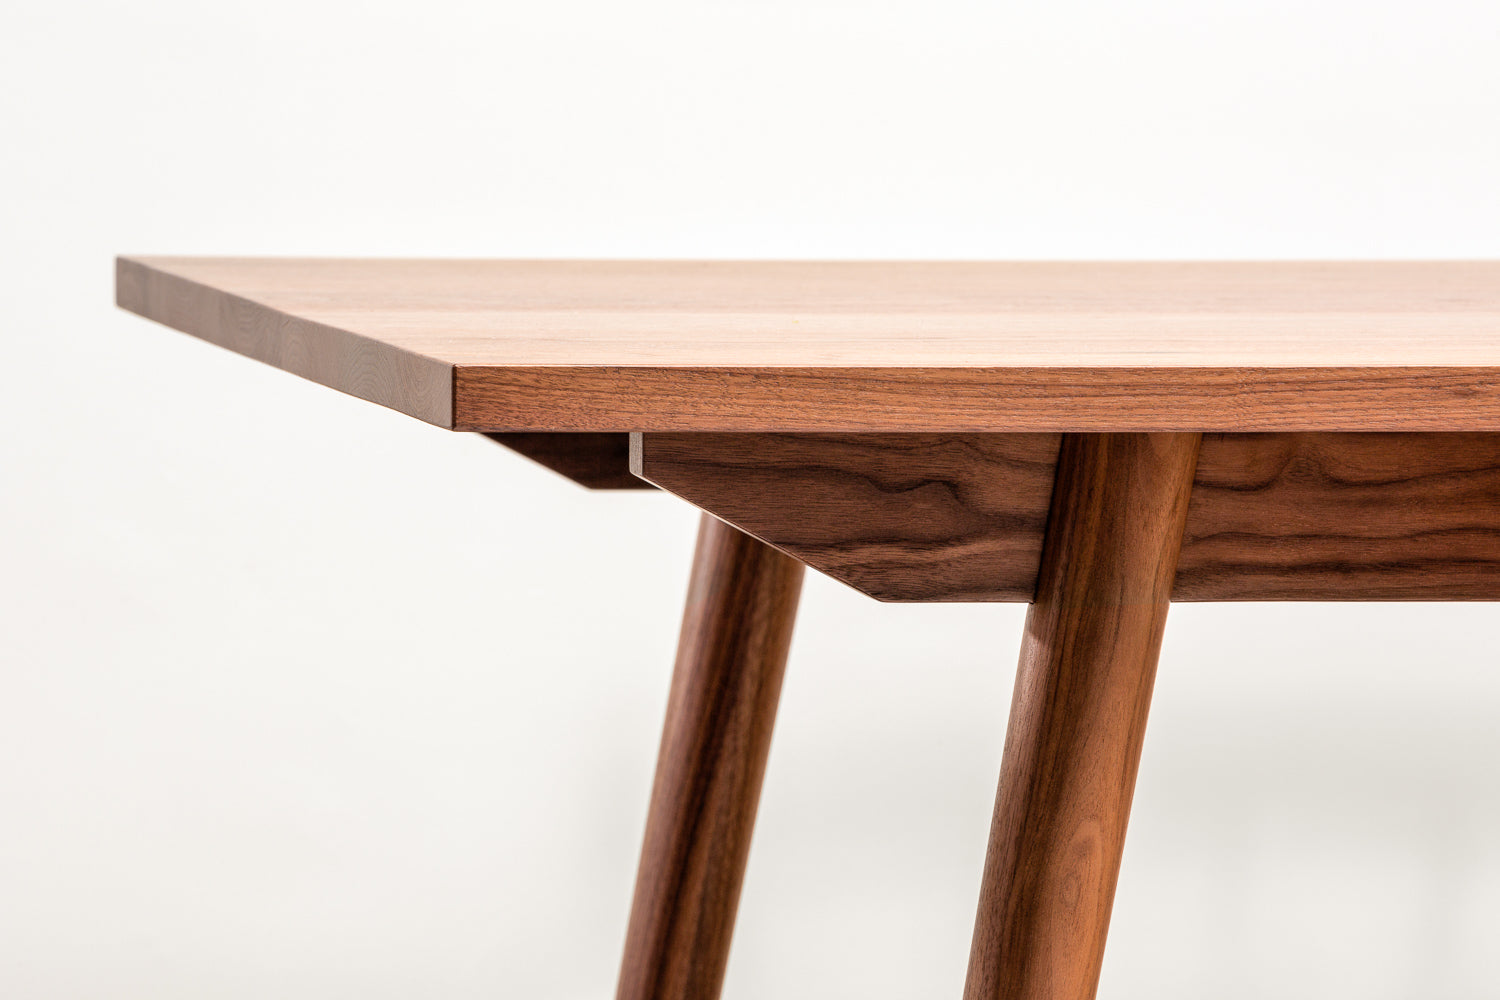 Scandinavian inspired walnut dining table from Chilton Furniture.